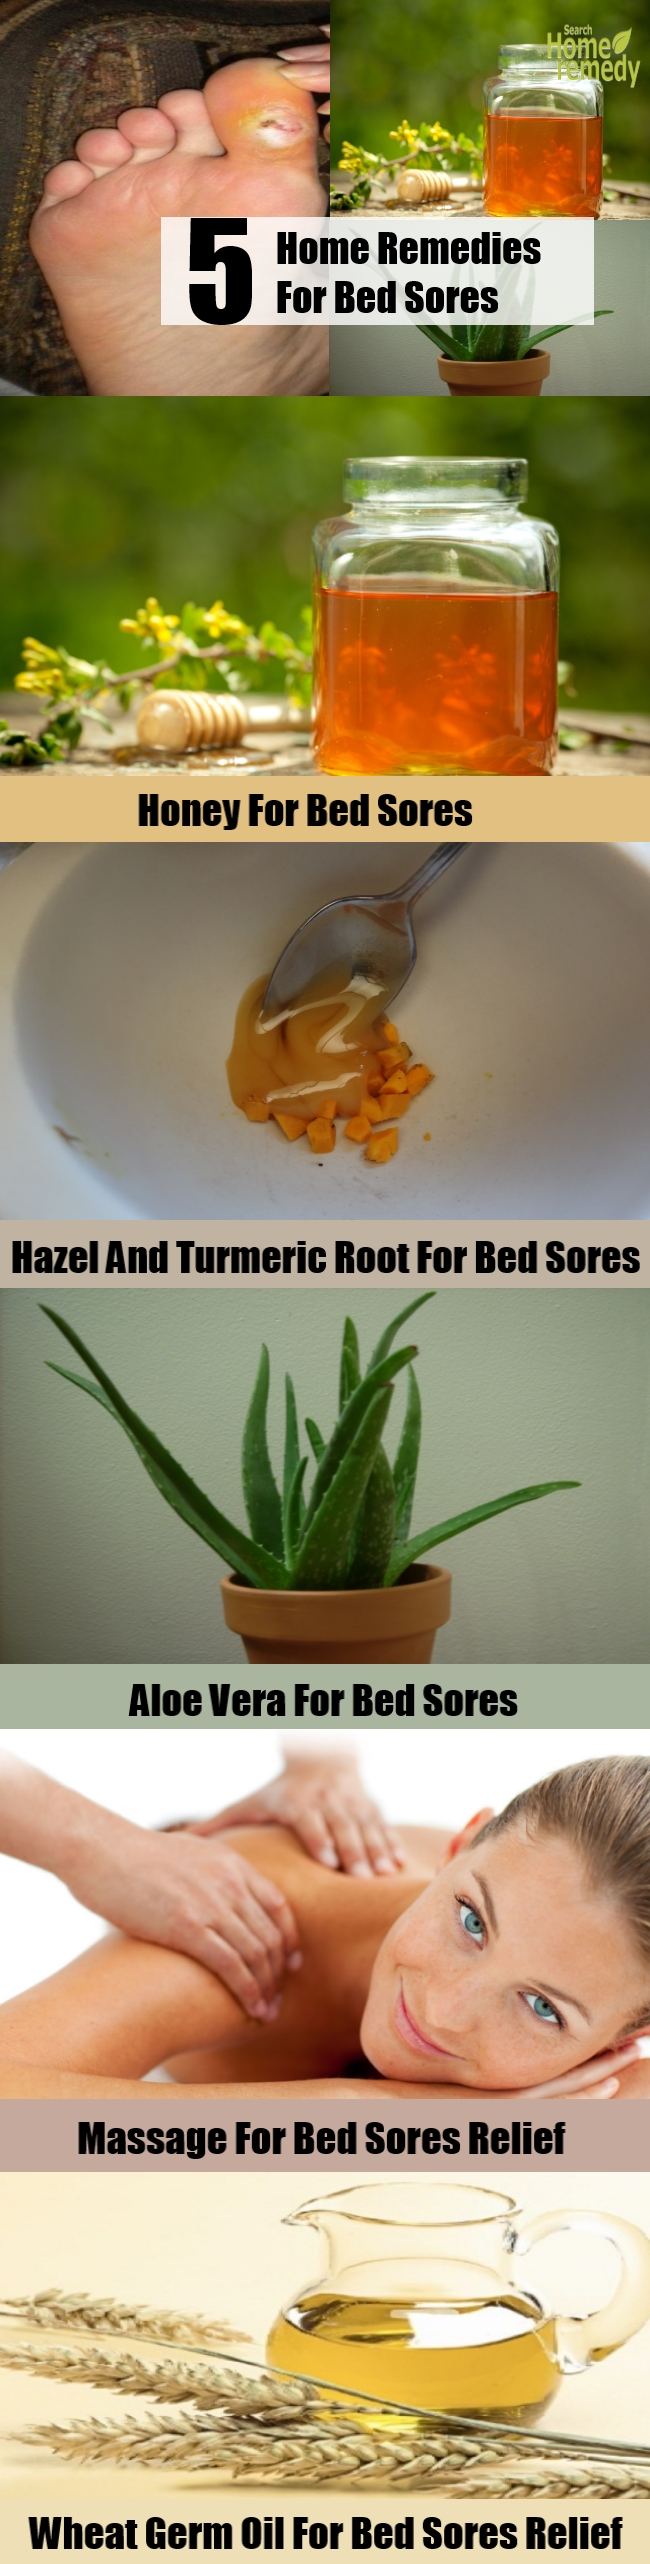 5 Top Home Remedies For Bed Sores